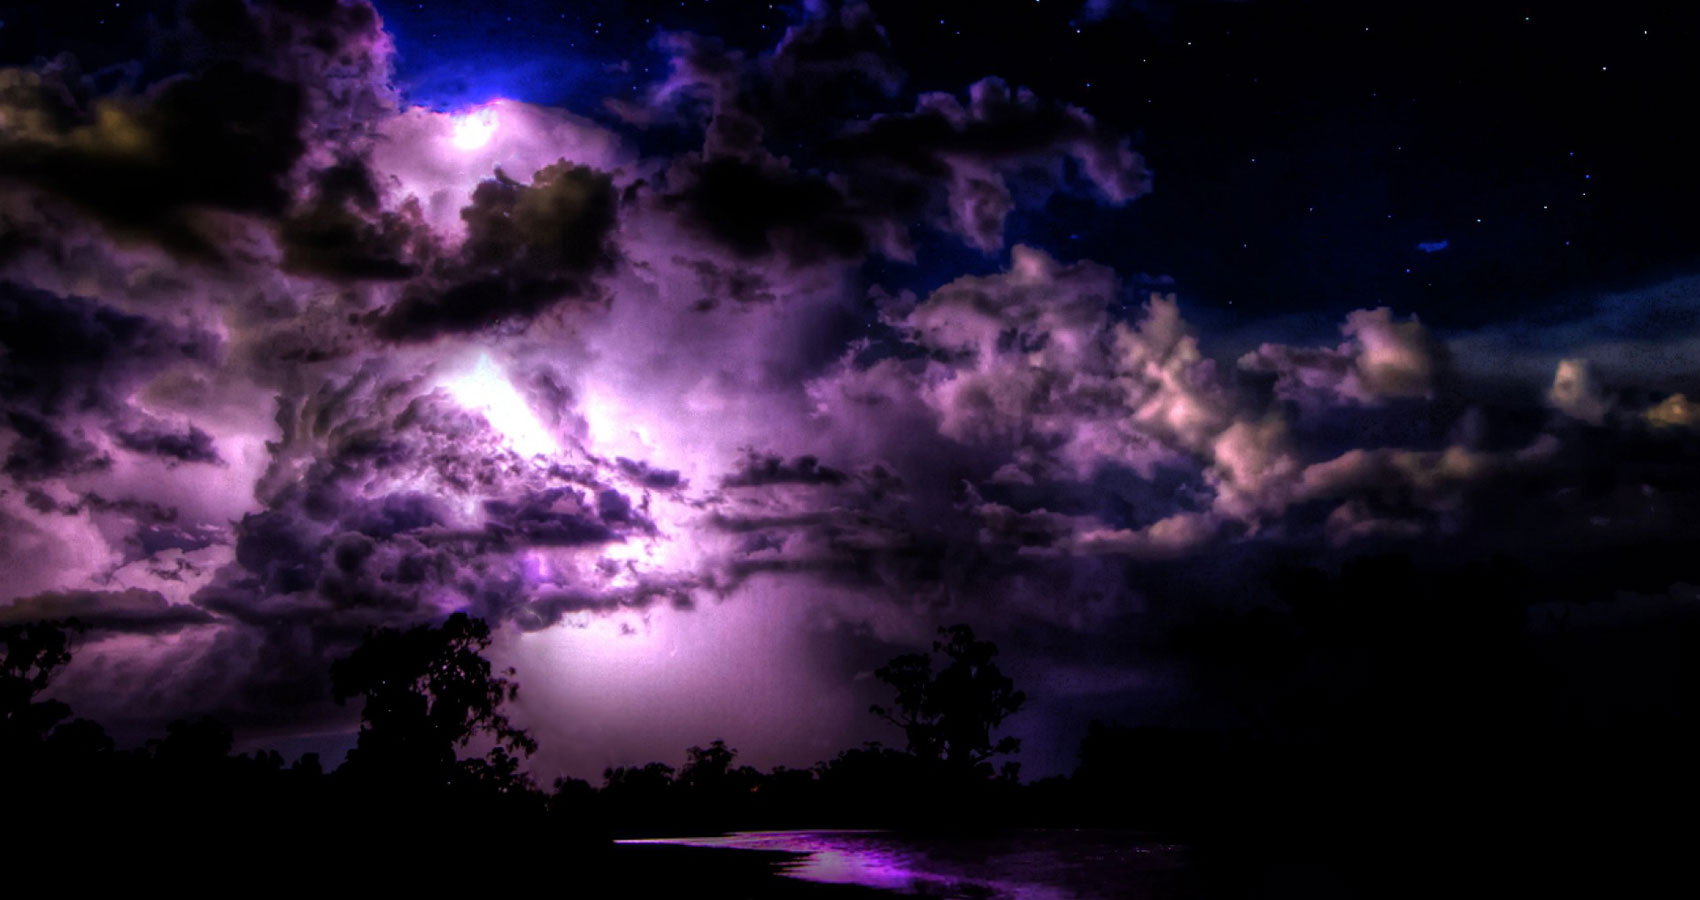 I Remember Purple Skies written by Brandi Easterling Collins at Spillwords.com